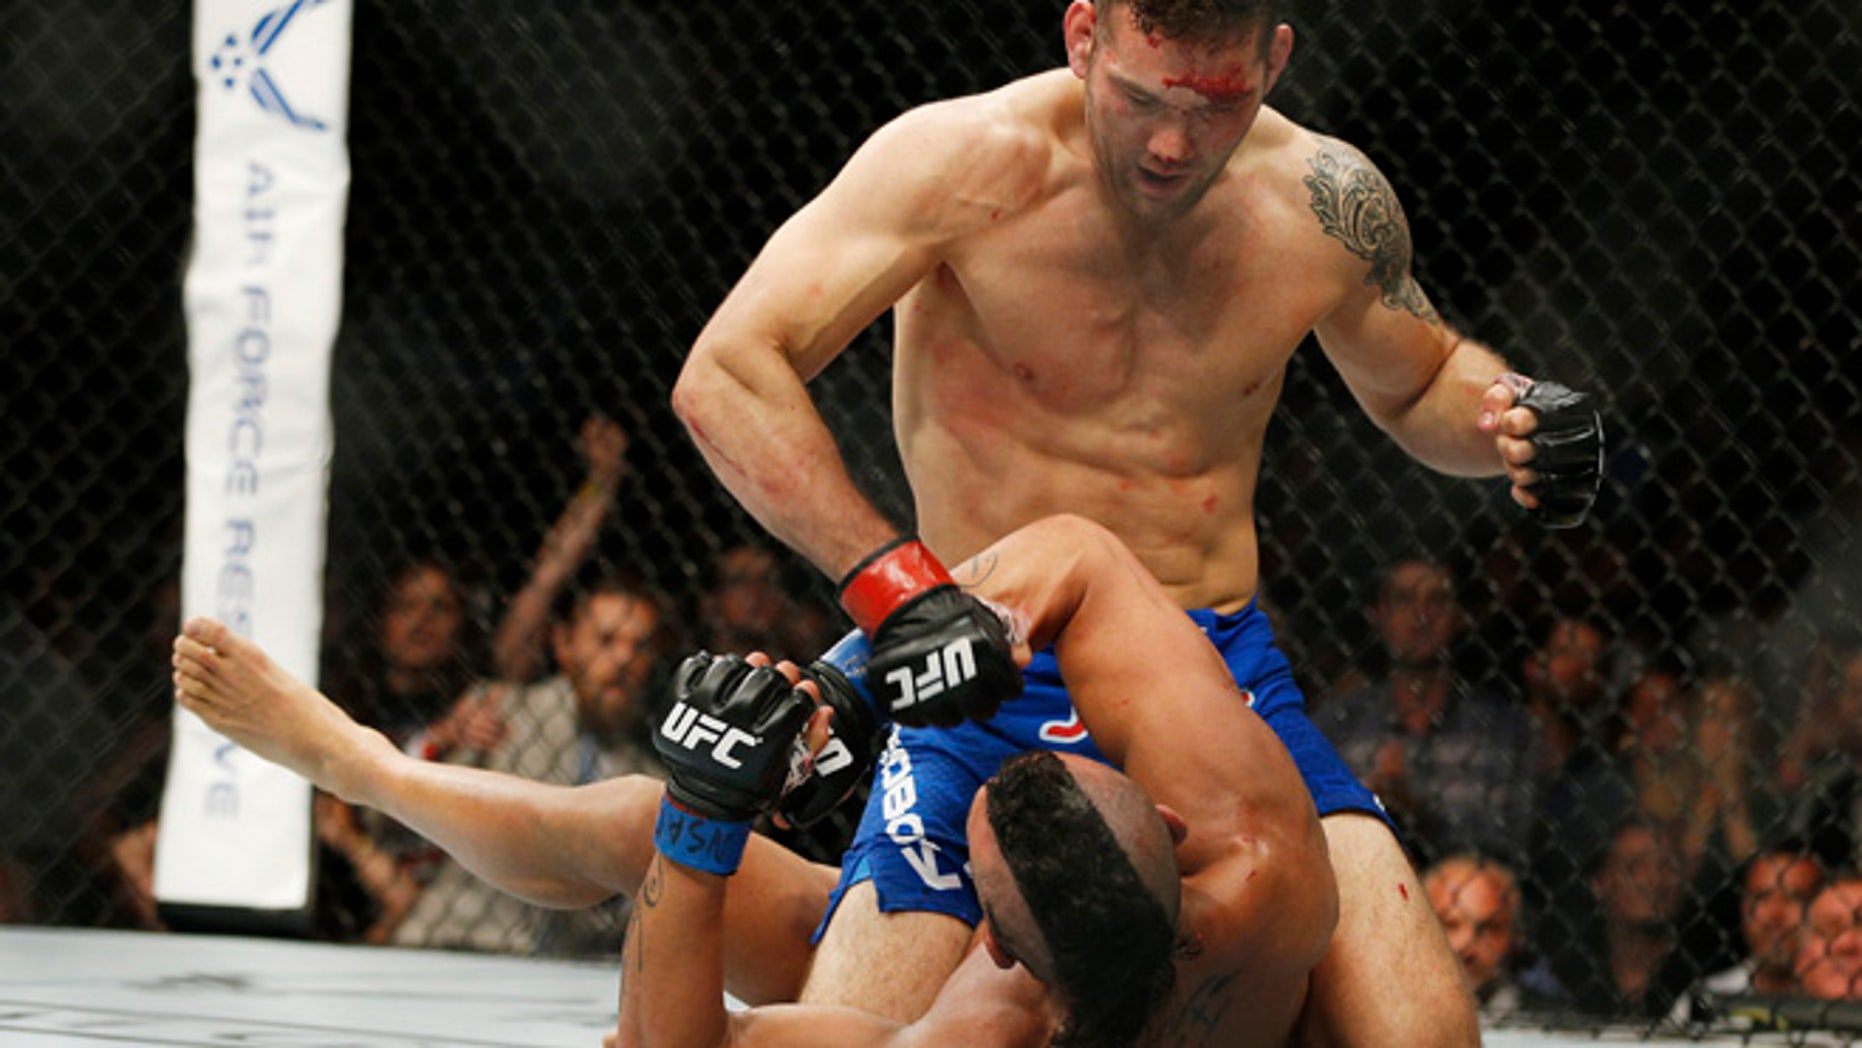 Chris Weidman pounds Vitor Belfort during their middleweight mixed martial arts bout at UFC 187 Saturday, May 23, 2015, in Las Vegas. (AP Photo/John Locher)